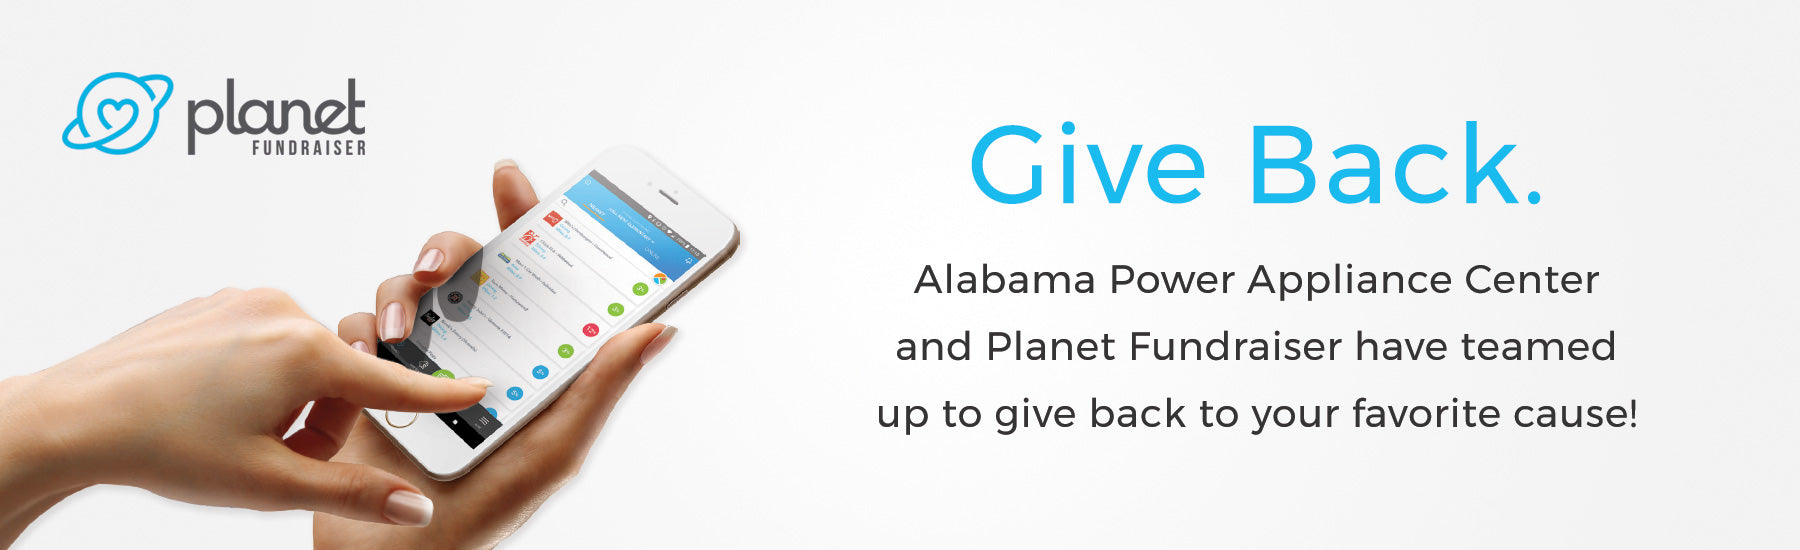 Give back with Planet Fundraiser and Alabama Power Appliance Center